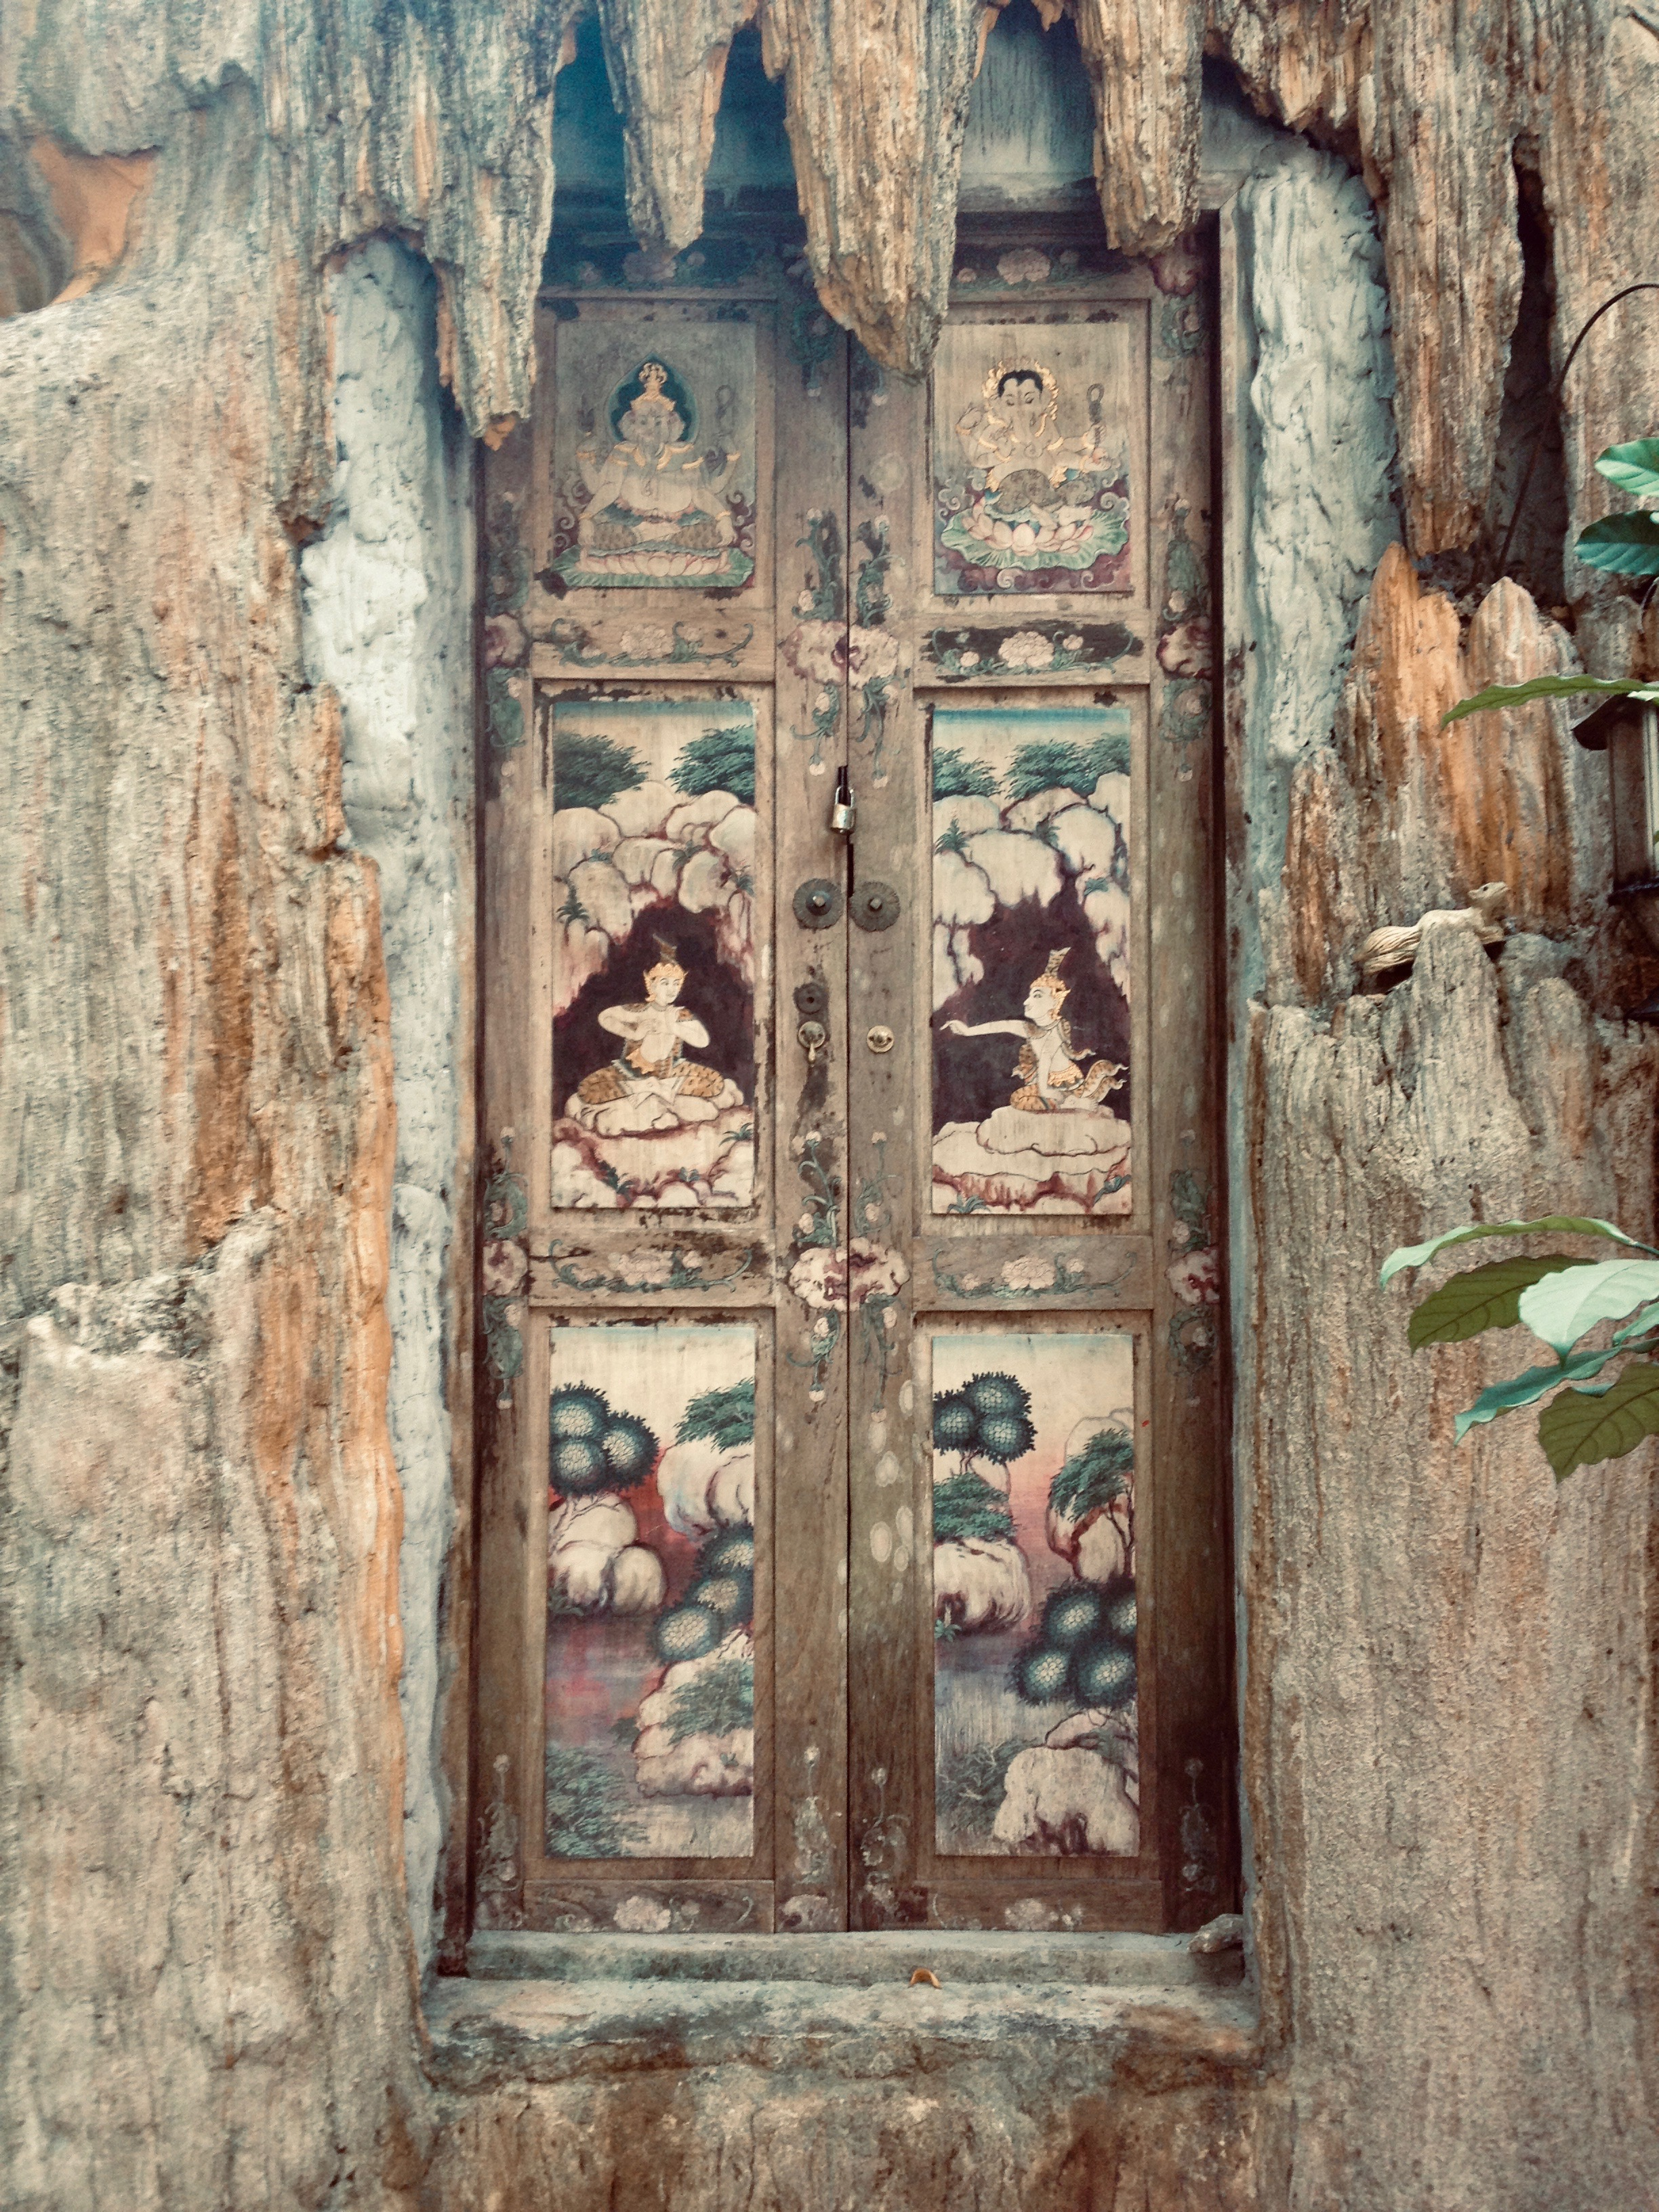 Beautiful artwork on the door panels of the entrance to this retreat cave high above the city (Chiang Mai, Thailand)